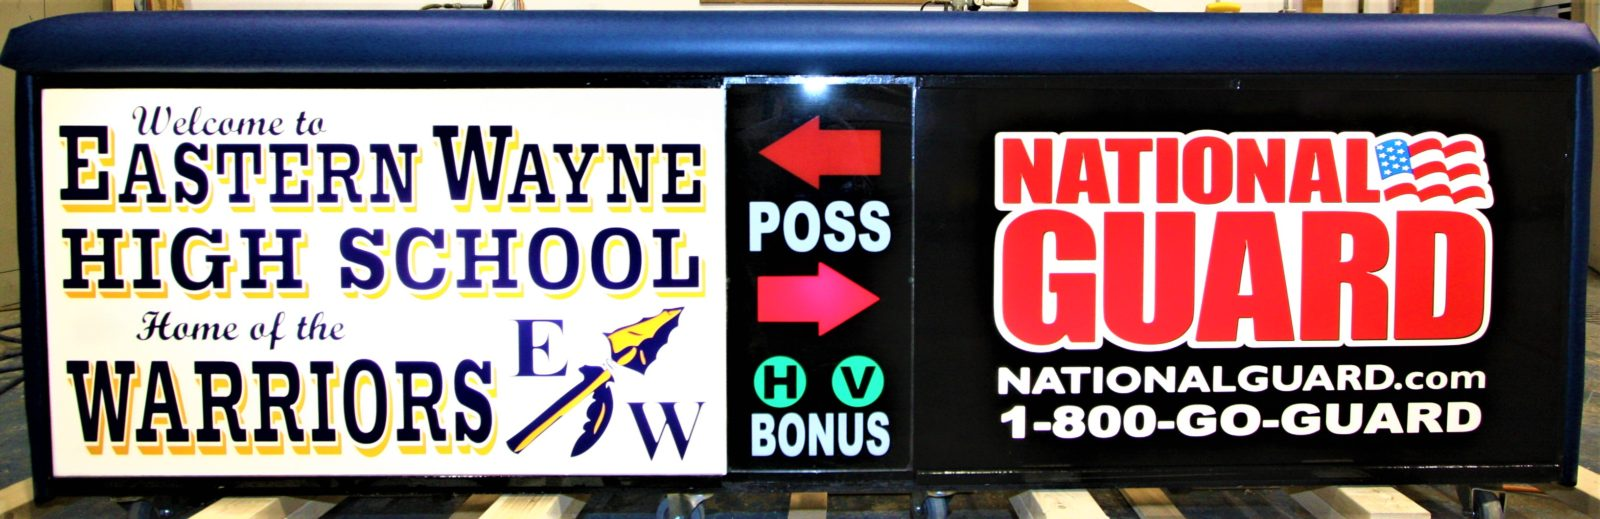 Eastern Wayne High school scoring table North Carolina Army National Guard NCARNG